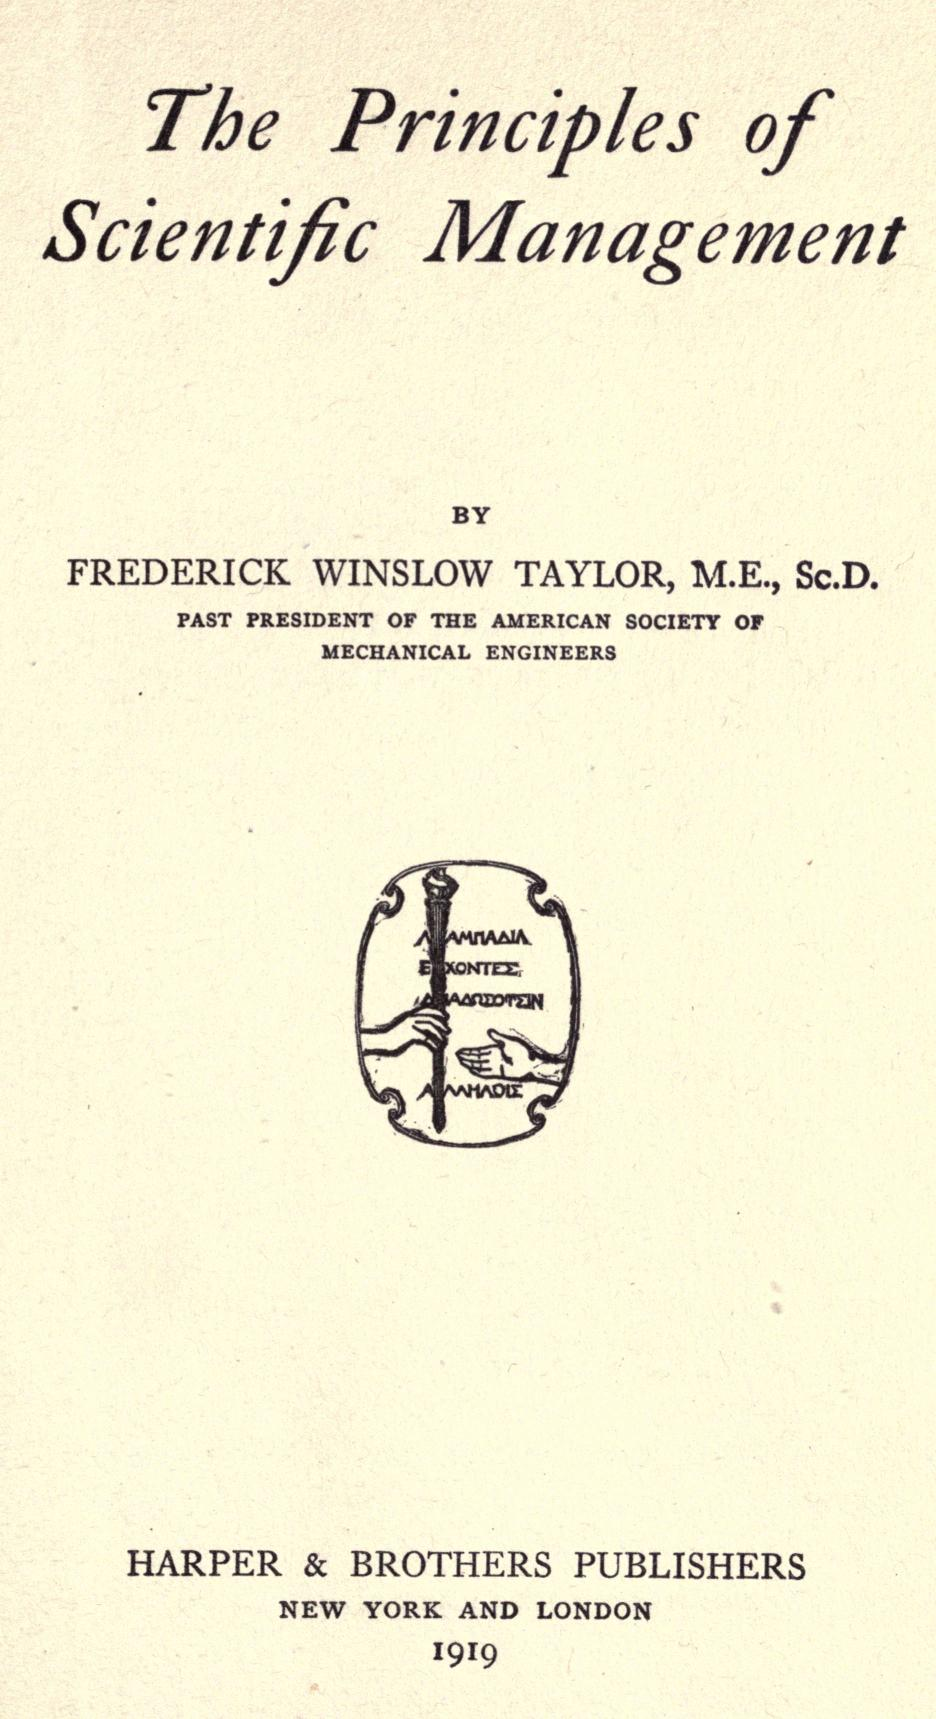 principles of frederick w taylor essay Make research projects and school reports about frederick winslow taylor easy with credible articles from our free, online encyclopedia and dictionary in 1881 taylor published an essay on metal cutting that generated a great deal of attention by engineers because of its rigorous examination of the individual steps.